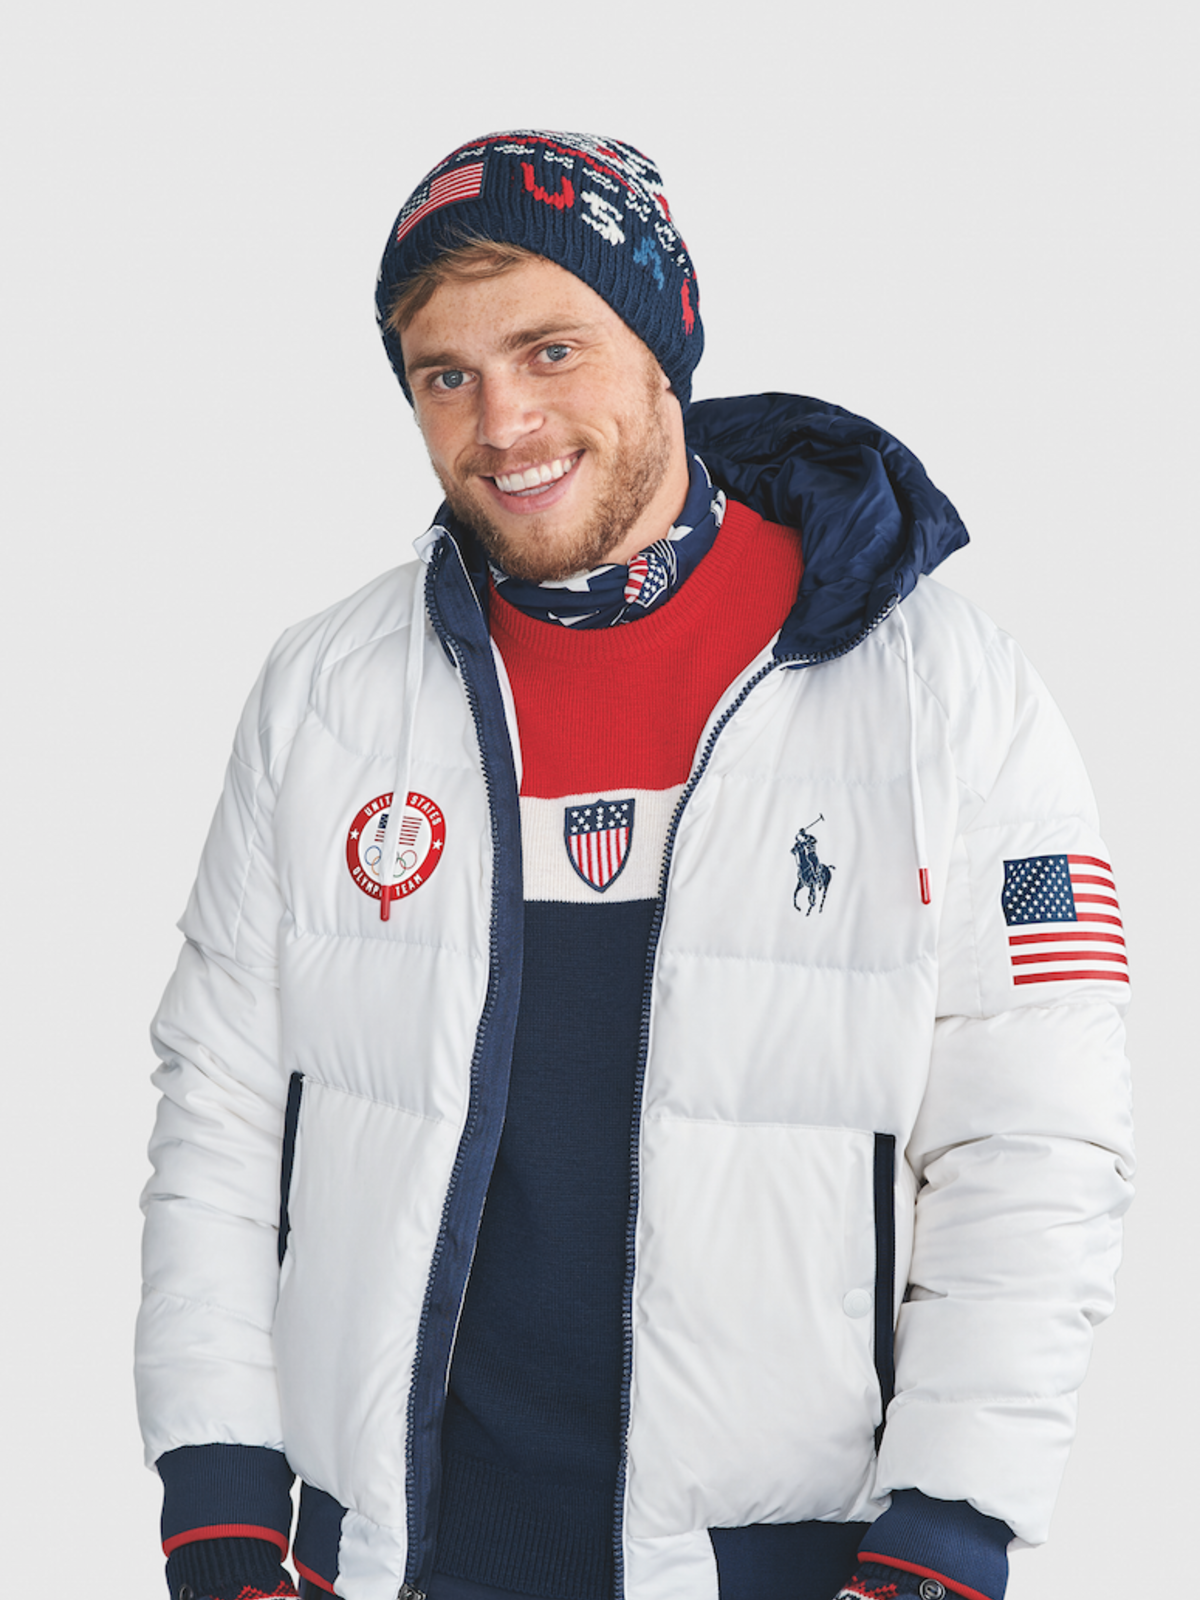 fb44016fd Gus Kenworthy Winter Olympics 2018 Ralph Lauren closing ceremony outfits